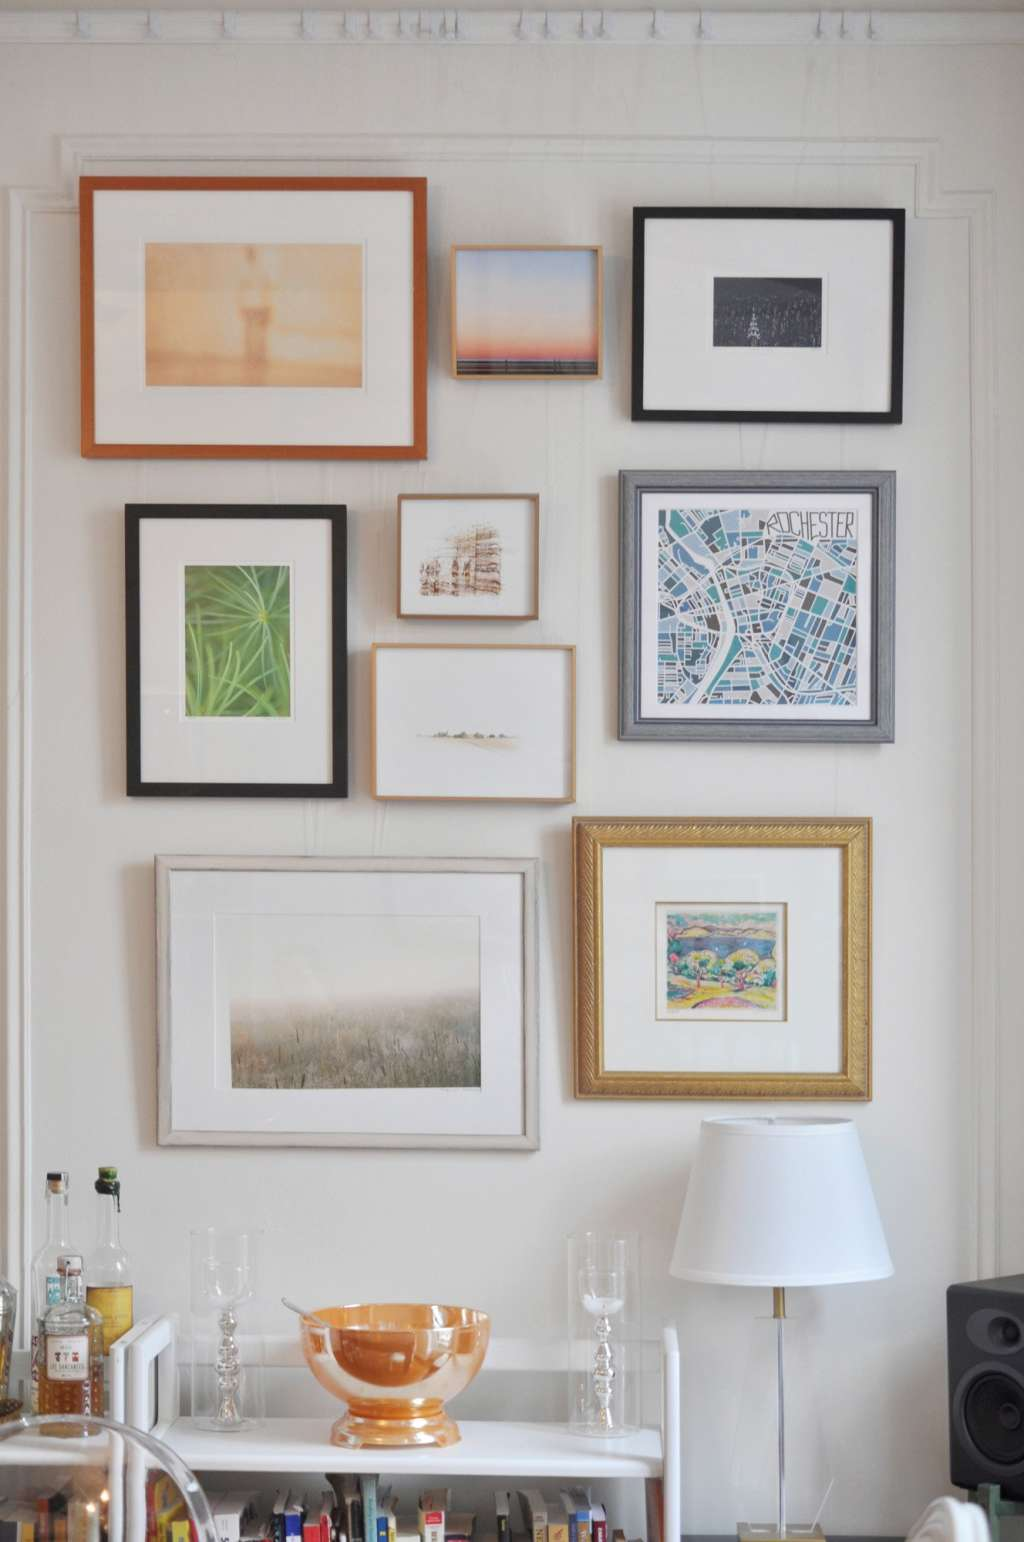 Frugal Living: How To Frame Your Art on the Cheap